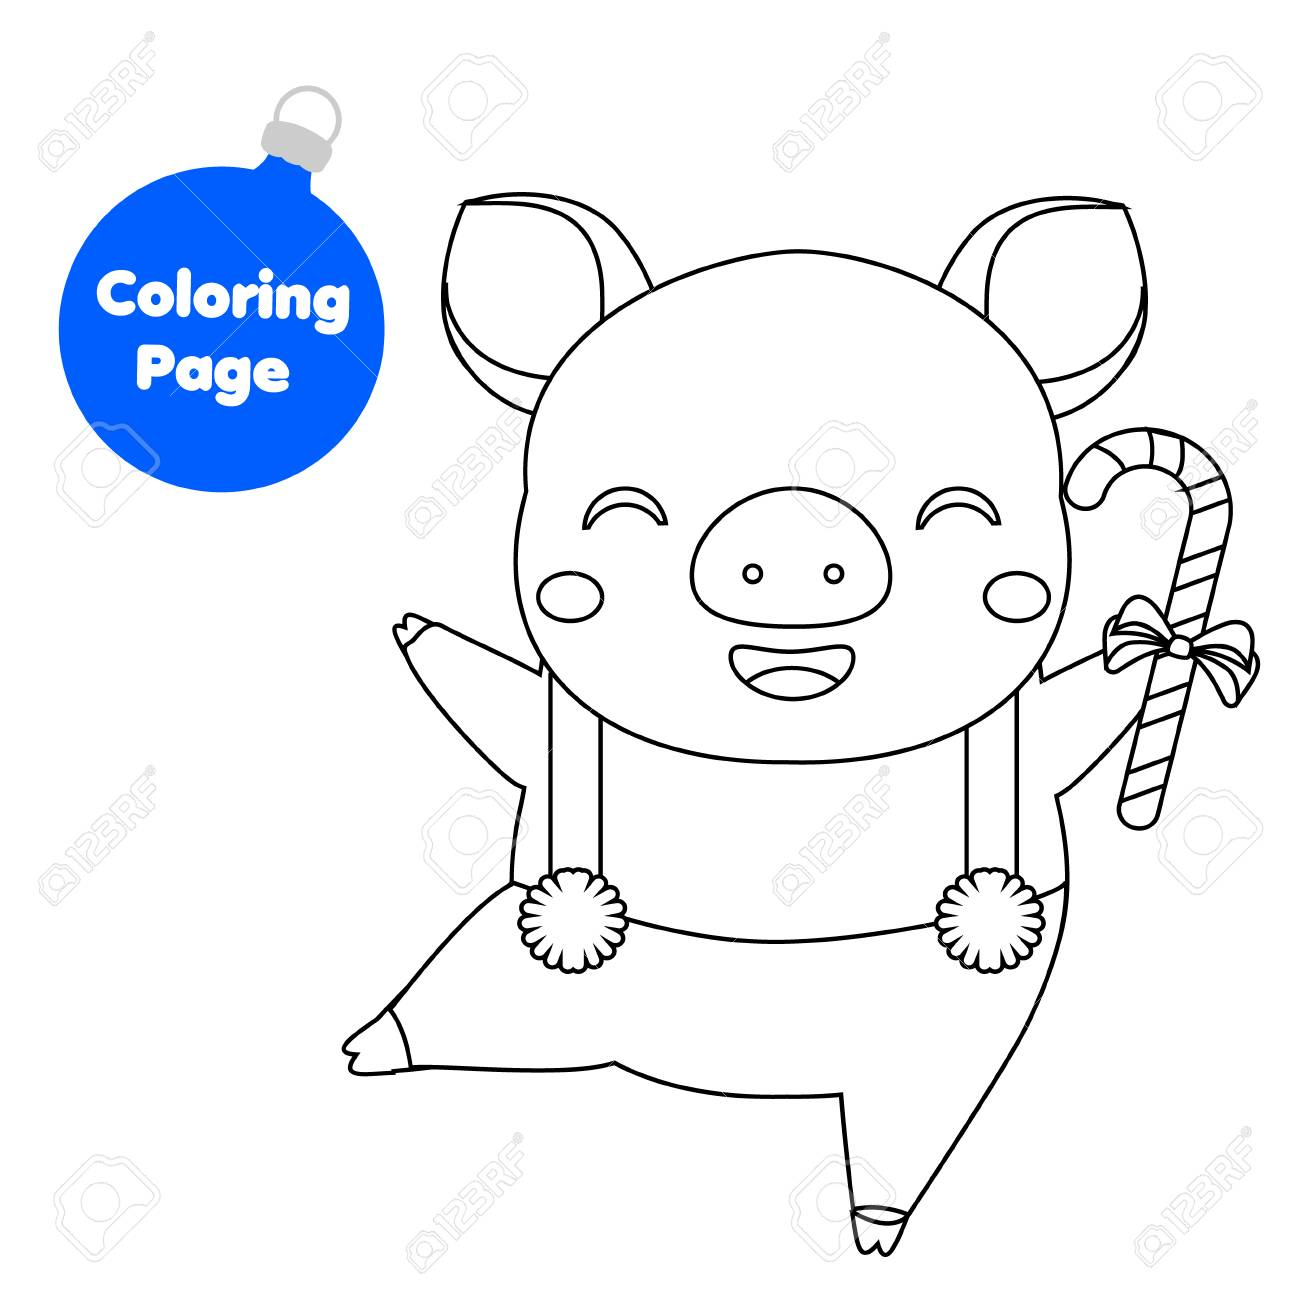 Coloring Page. New Year Pig Holding Candy Cane. Educational Children ...